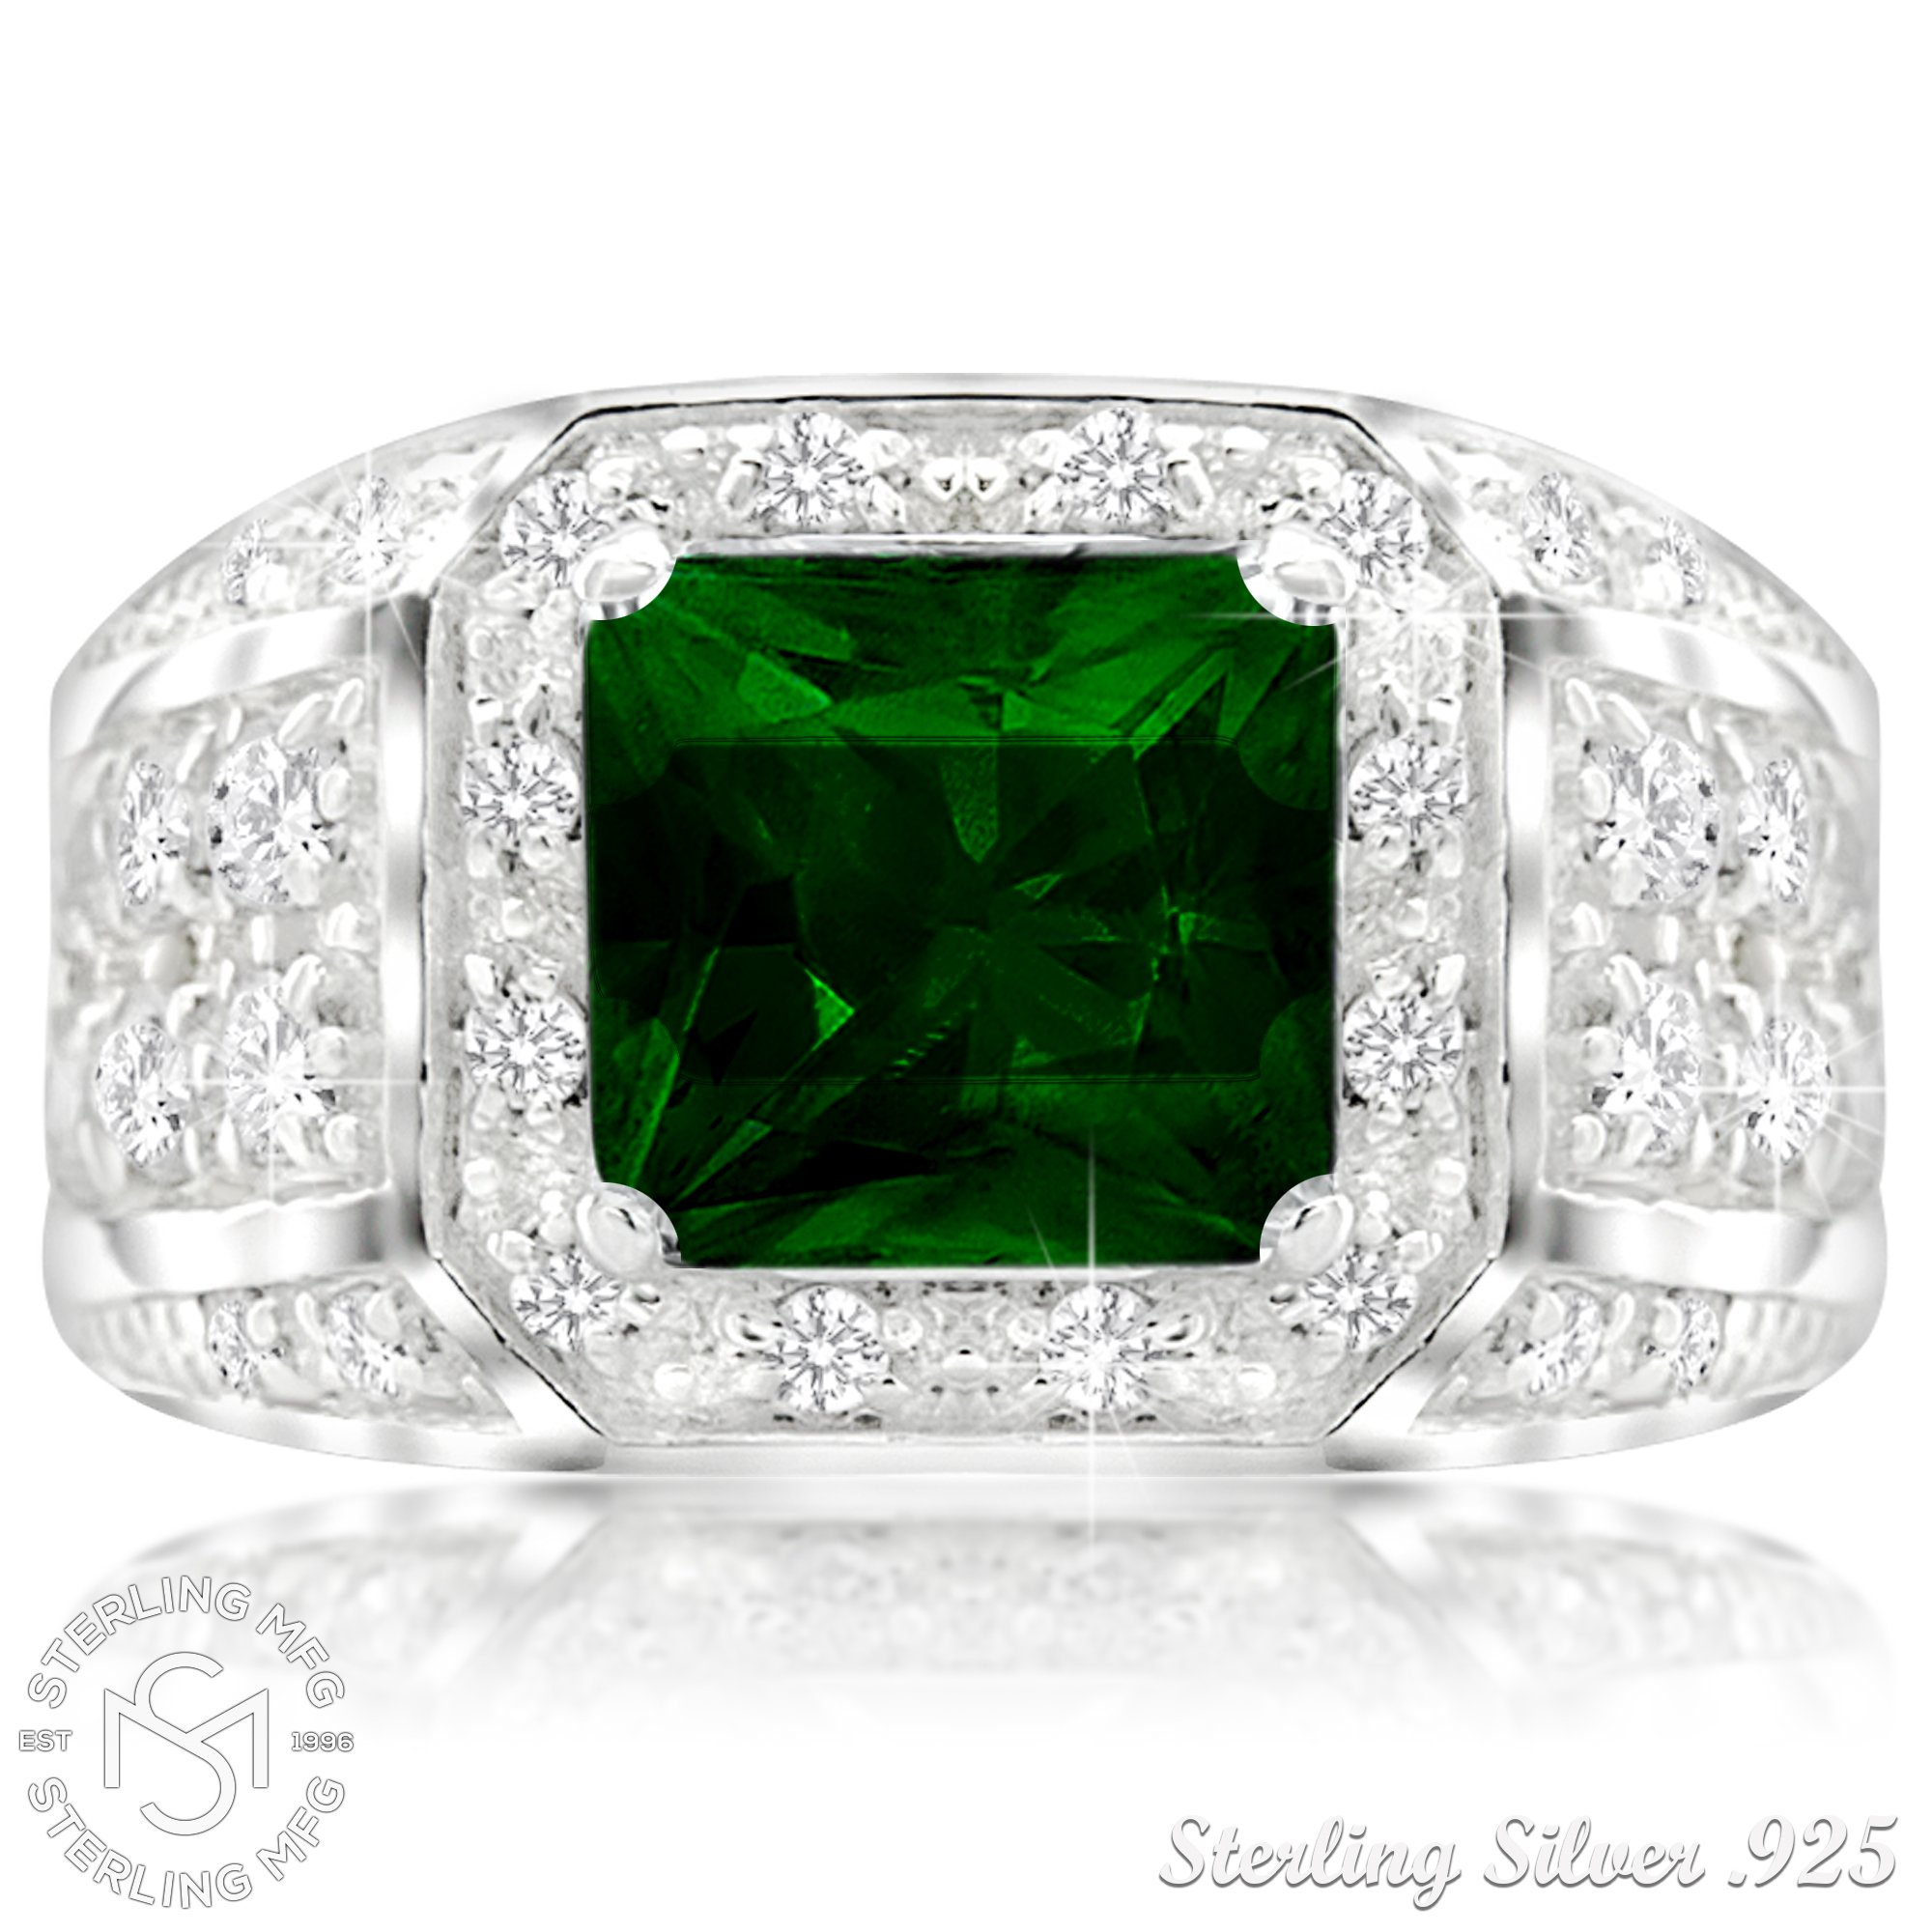 Men's Elegant Sterling Silver .925 Ring High Polish Princess Cut Featuring a Synthetic Green Emerald and 32 Fancy Round Cubic Zirconia (CZ) Stones by Sterling Manufacturers (Image #3)